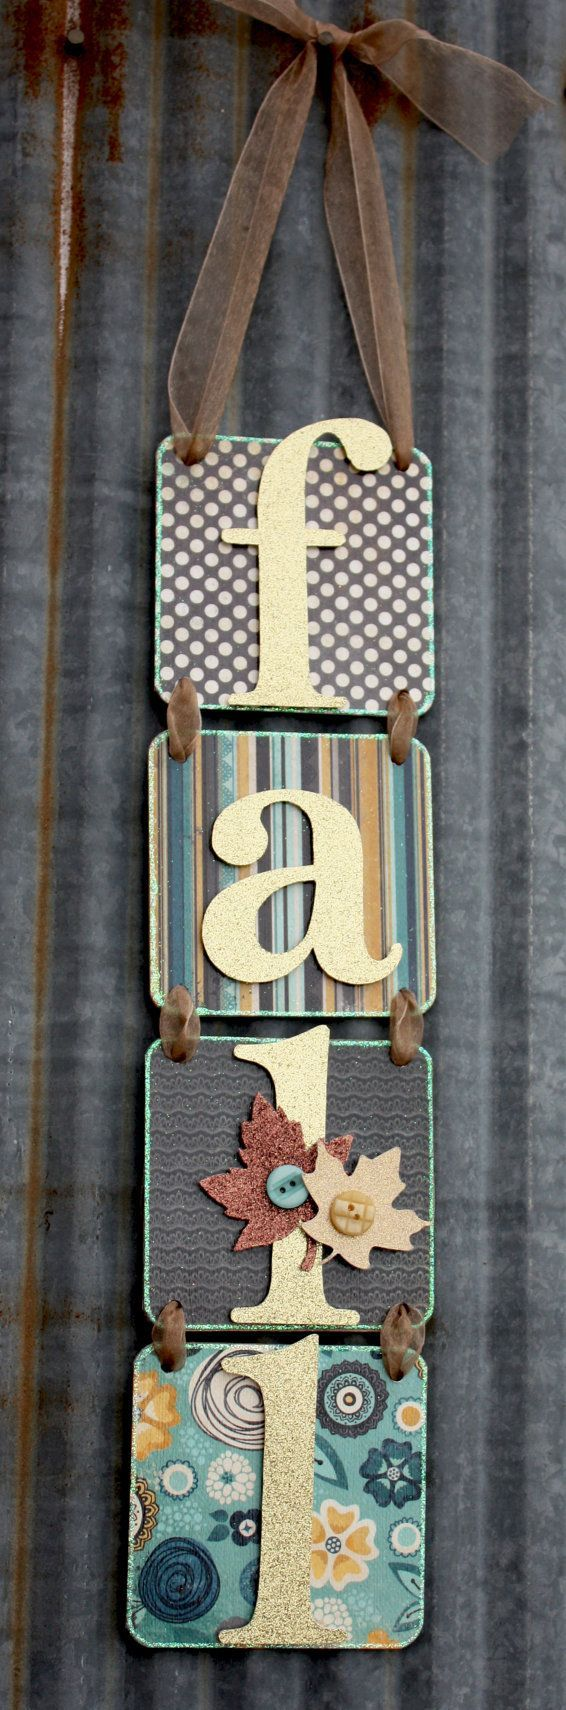 Simply Extraordinary DIY Letter Decor Here to Enhance the ...